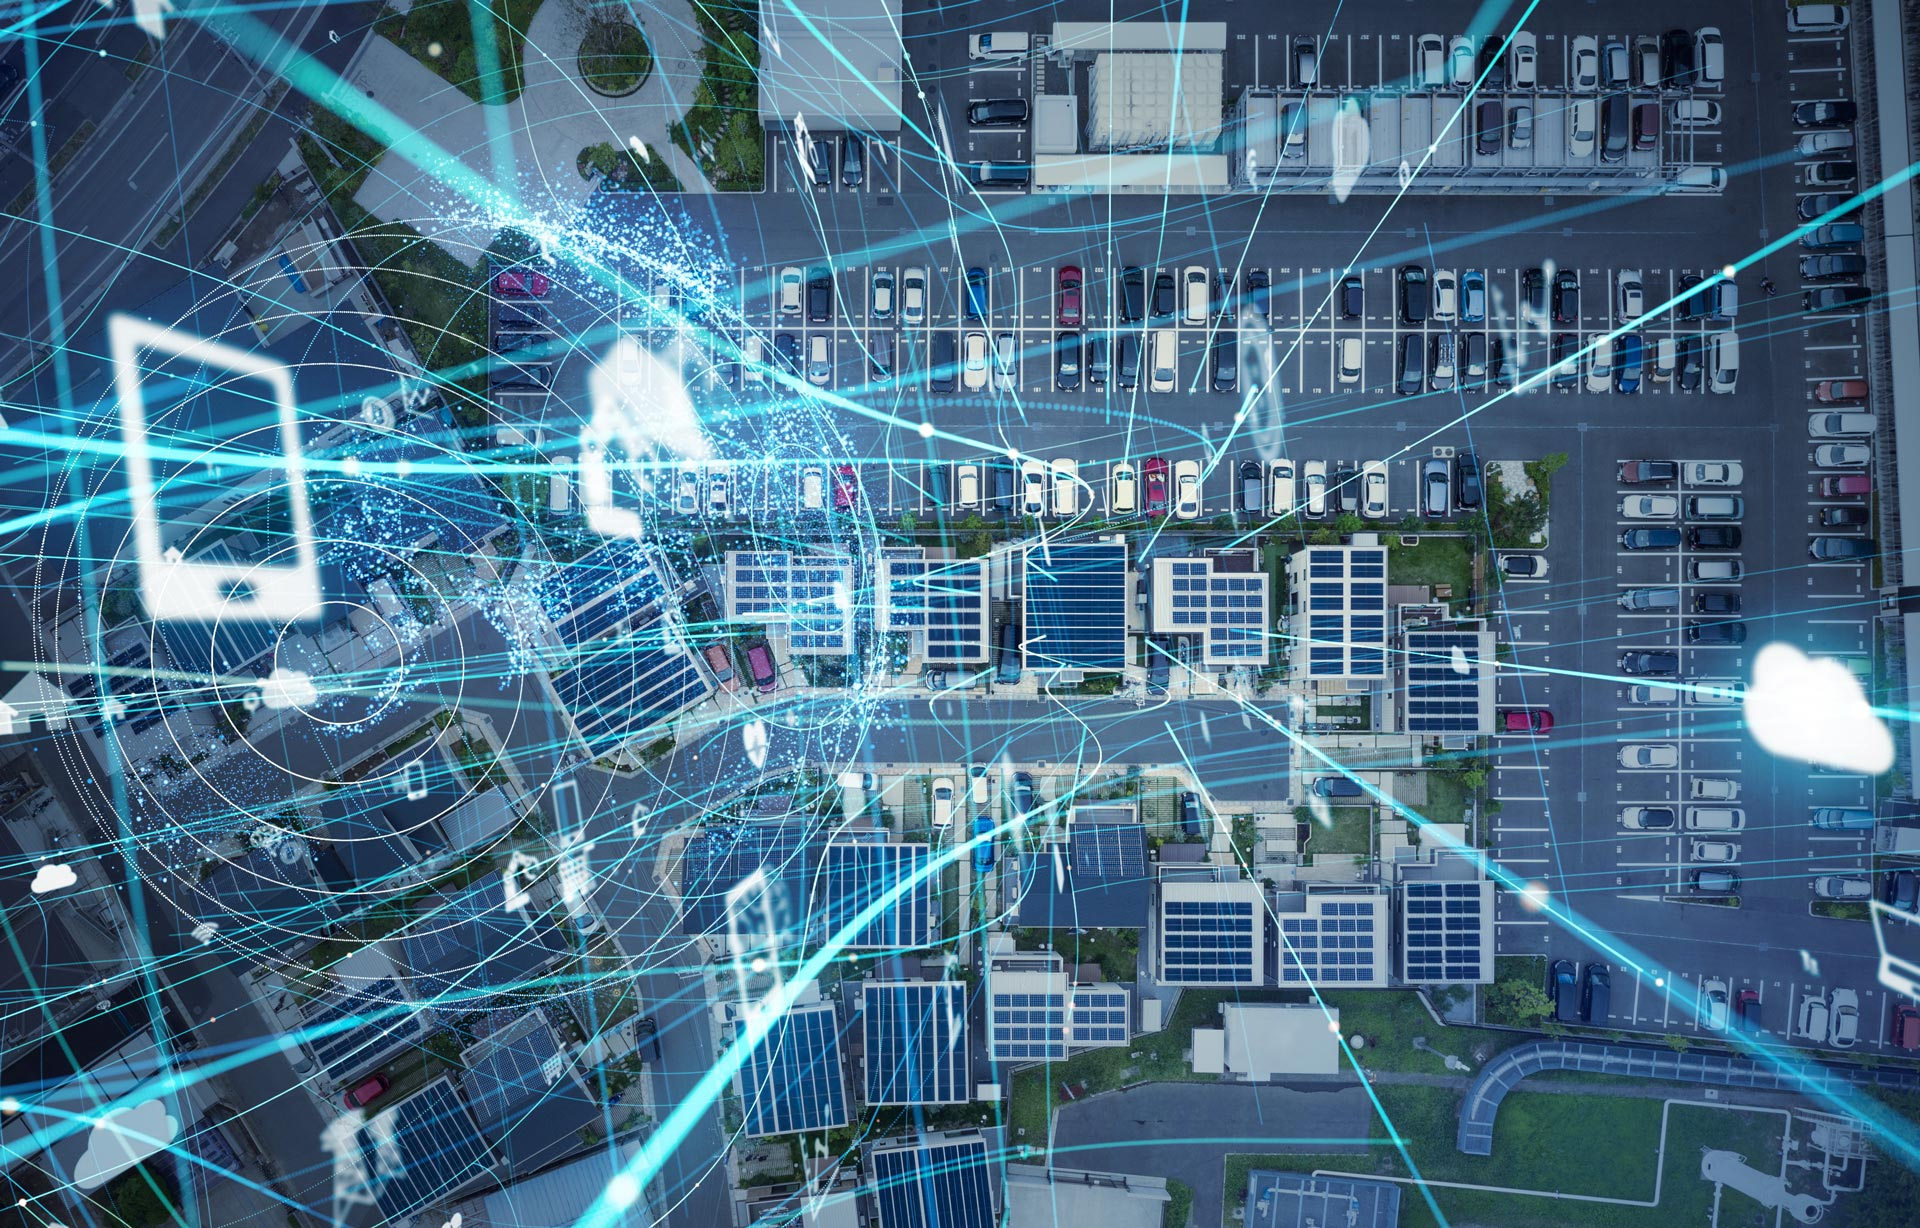 The future of IoT: Greater benefits come with greater risks